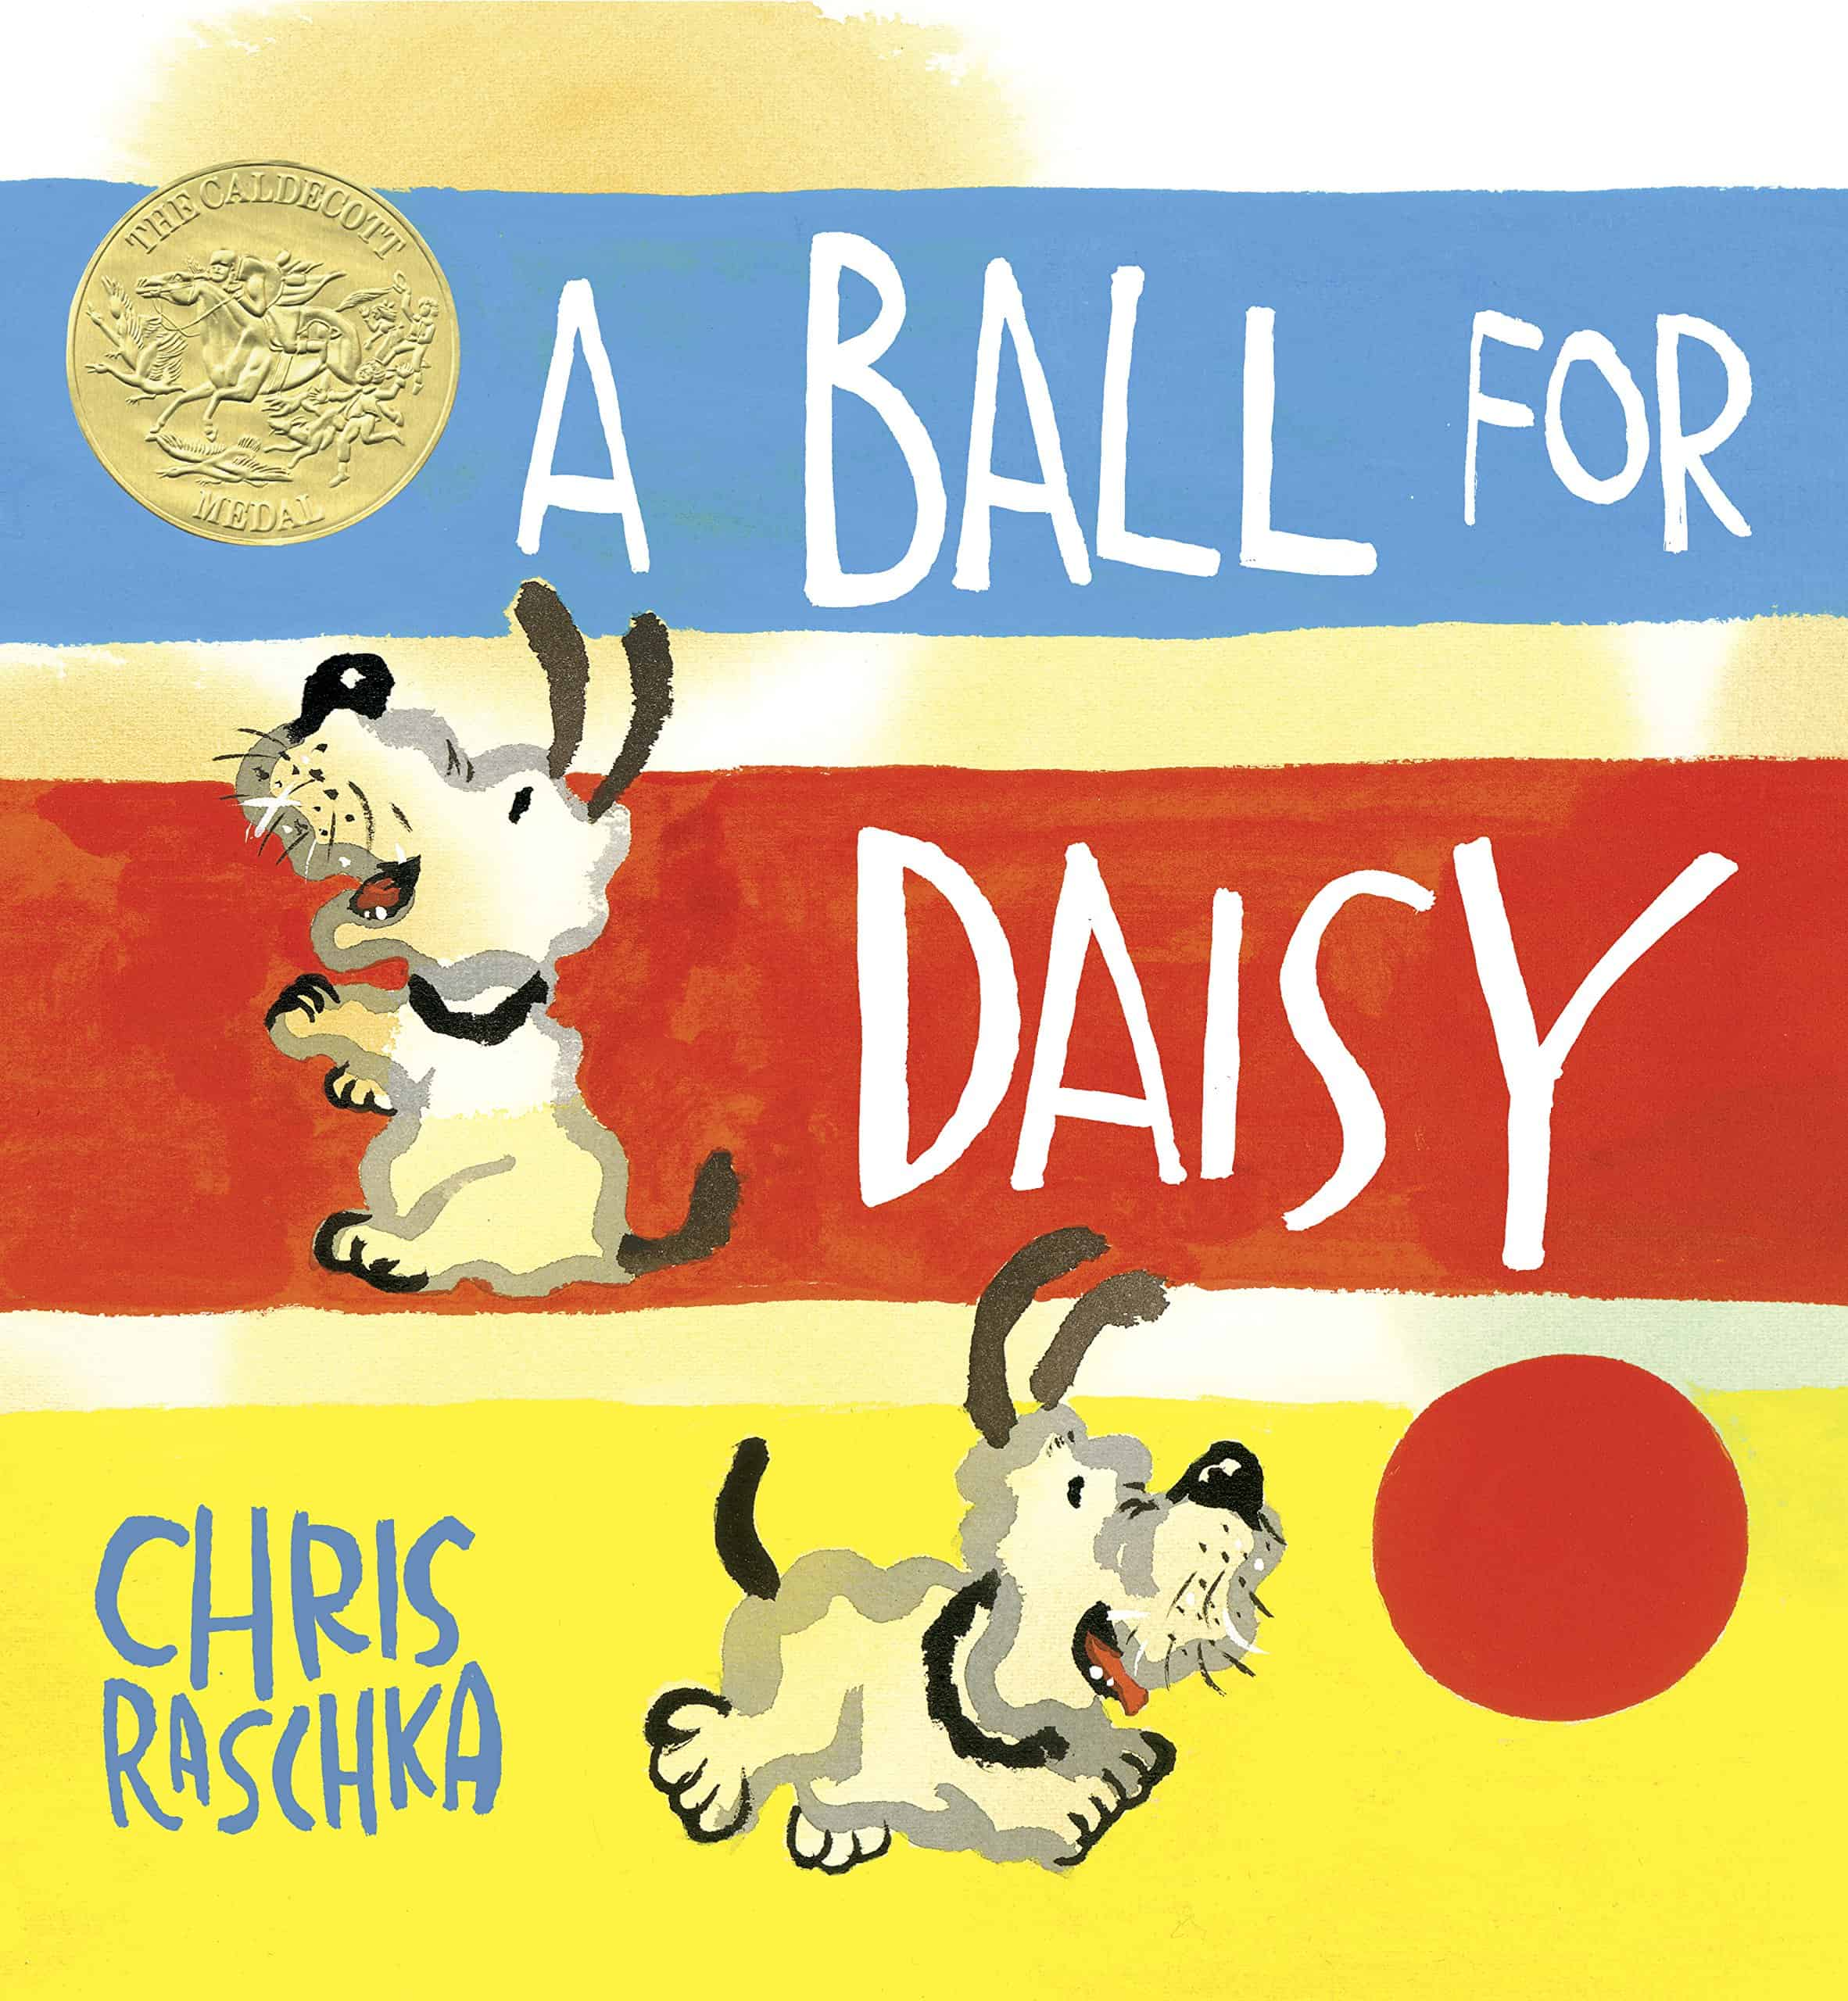 A Ball for Daisy Chris Raschka